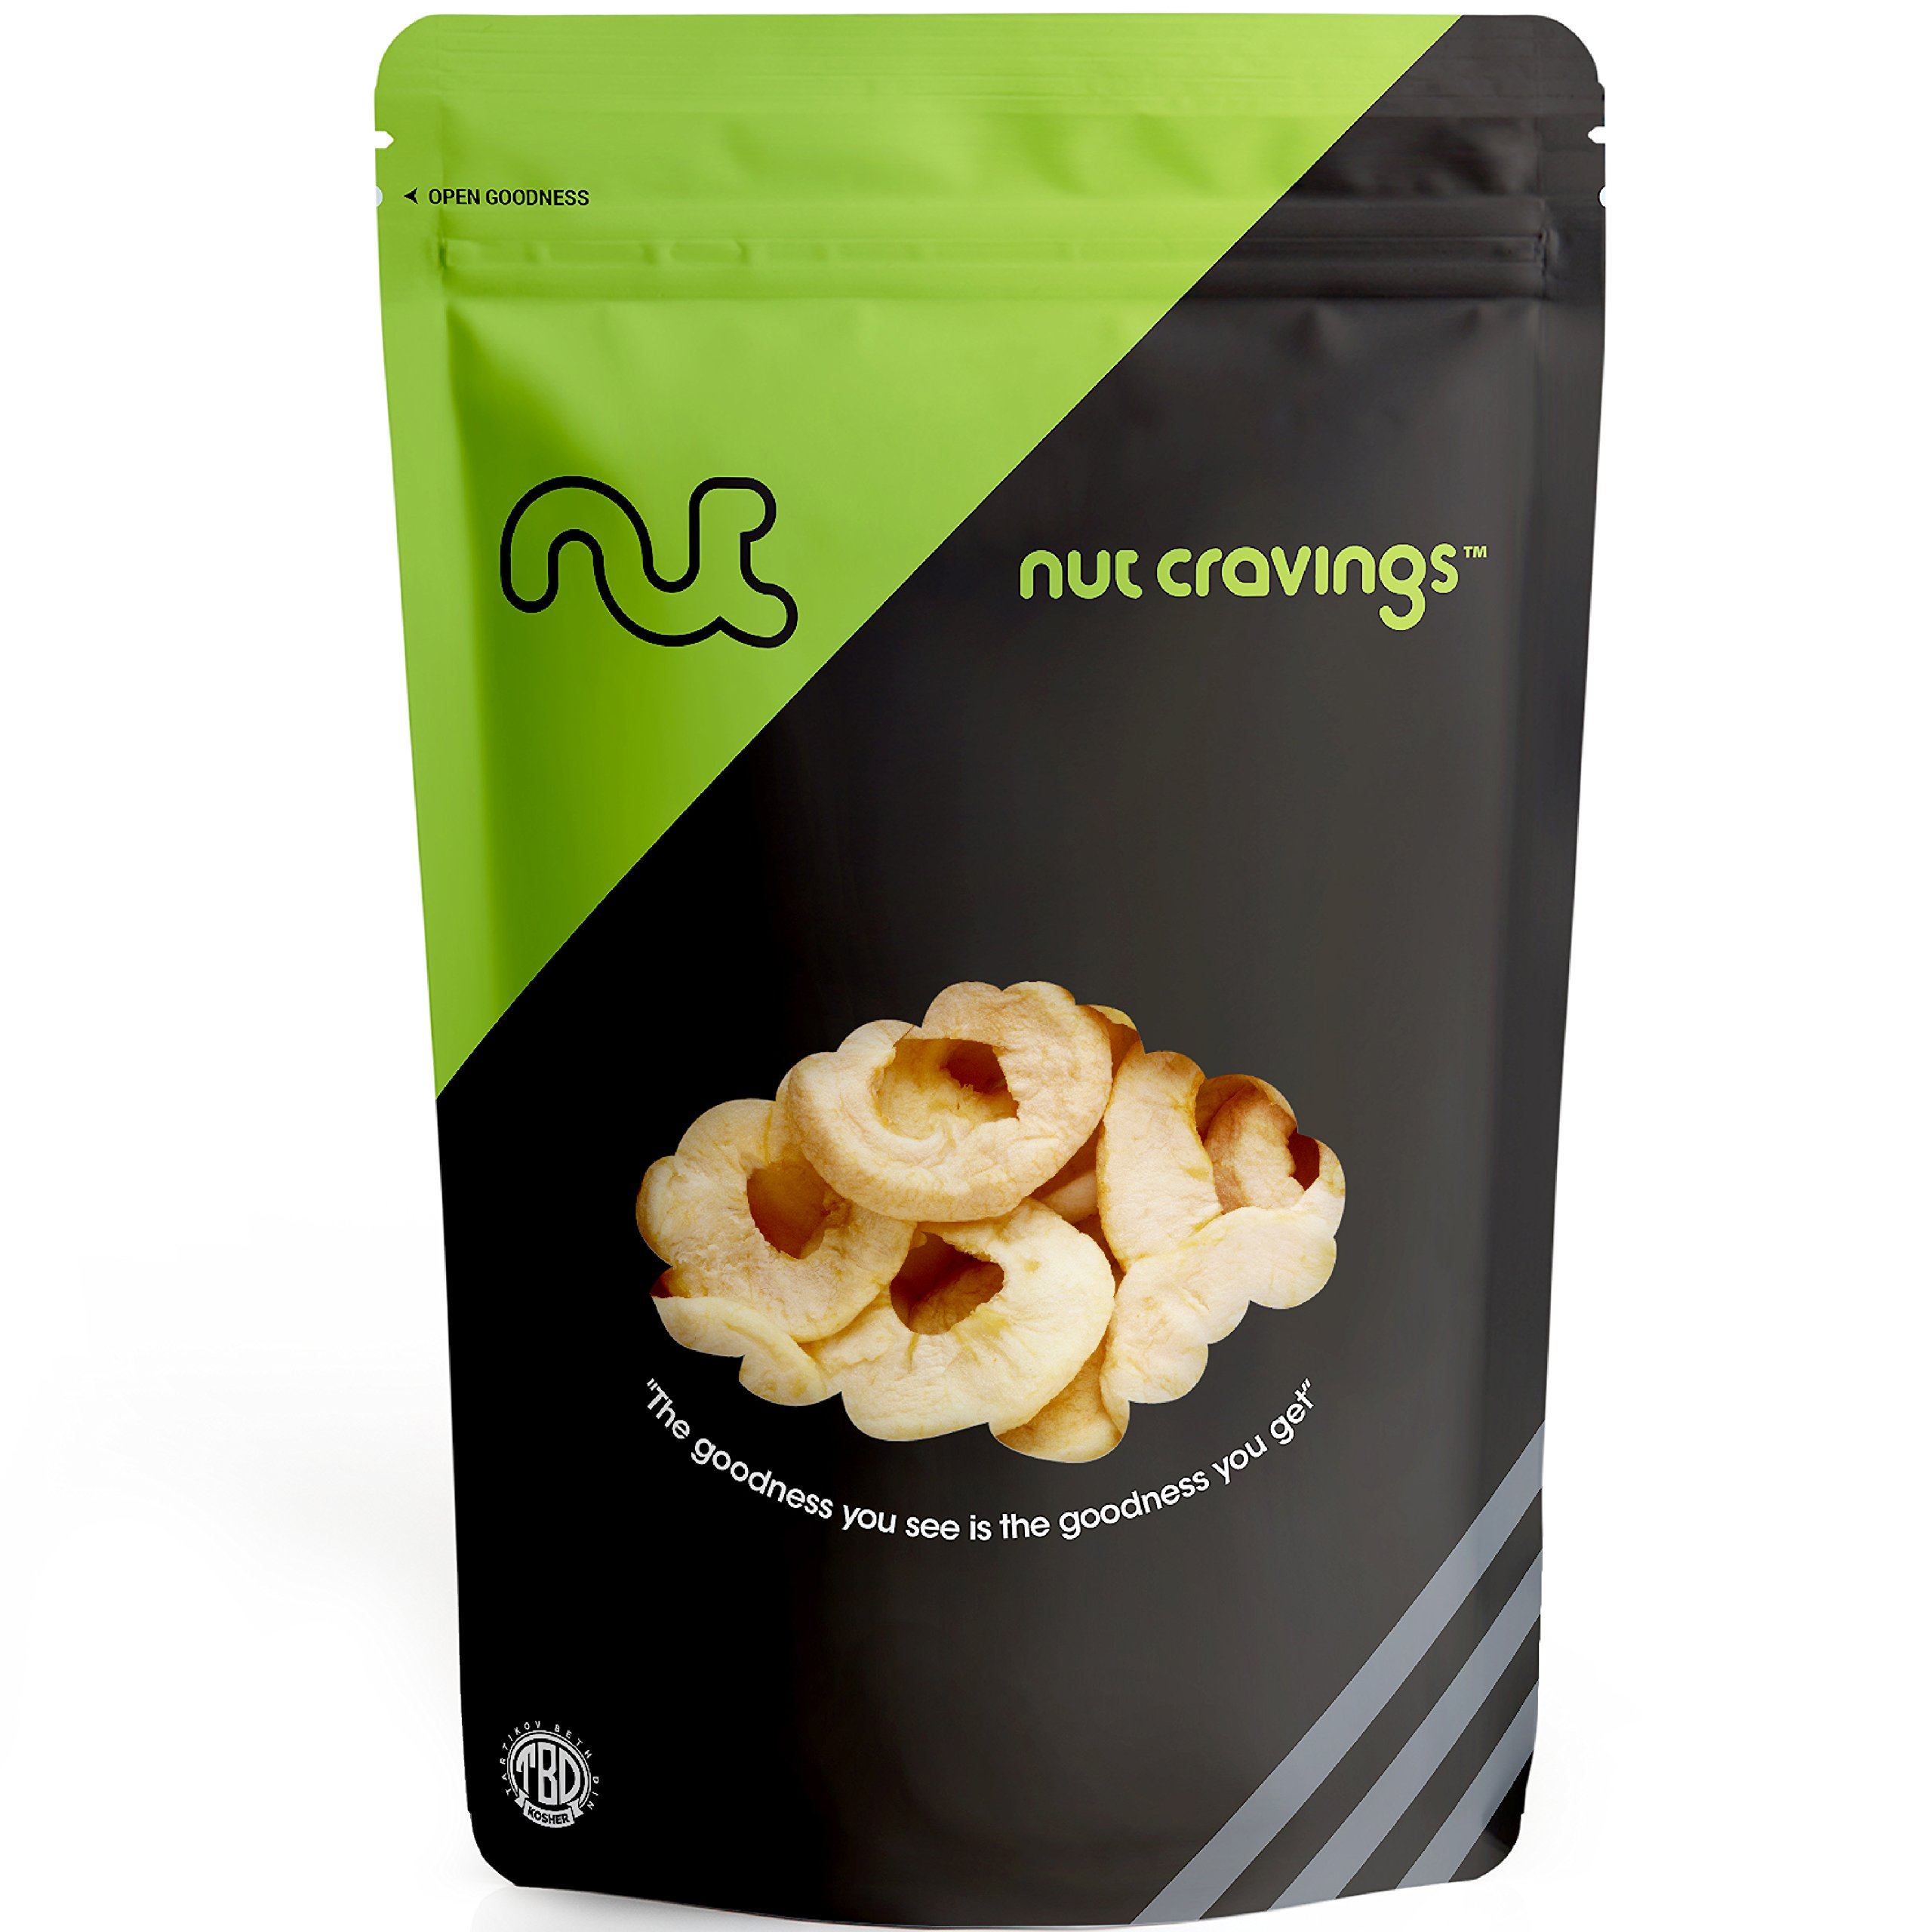 Nut Cravings - Dried Apple Rings - Sweet, Healthy Dehydrated Fruit Snacks - SAMPLER SIZE by Nut Cravings